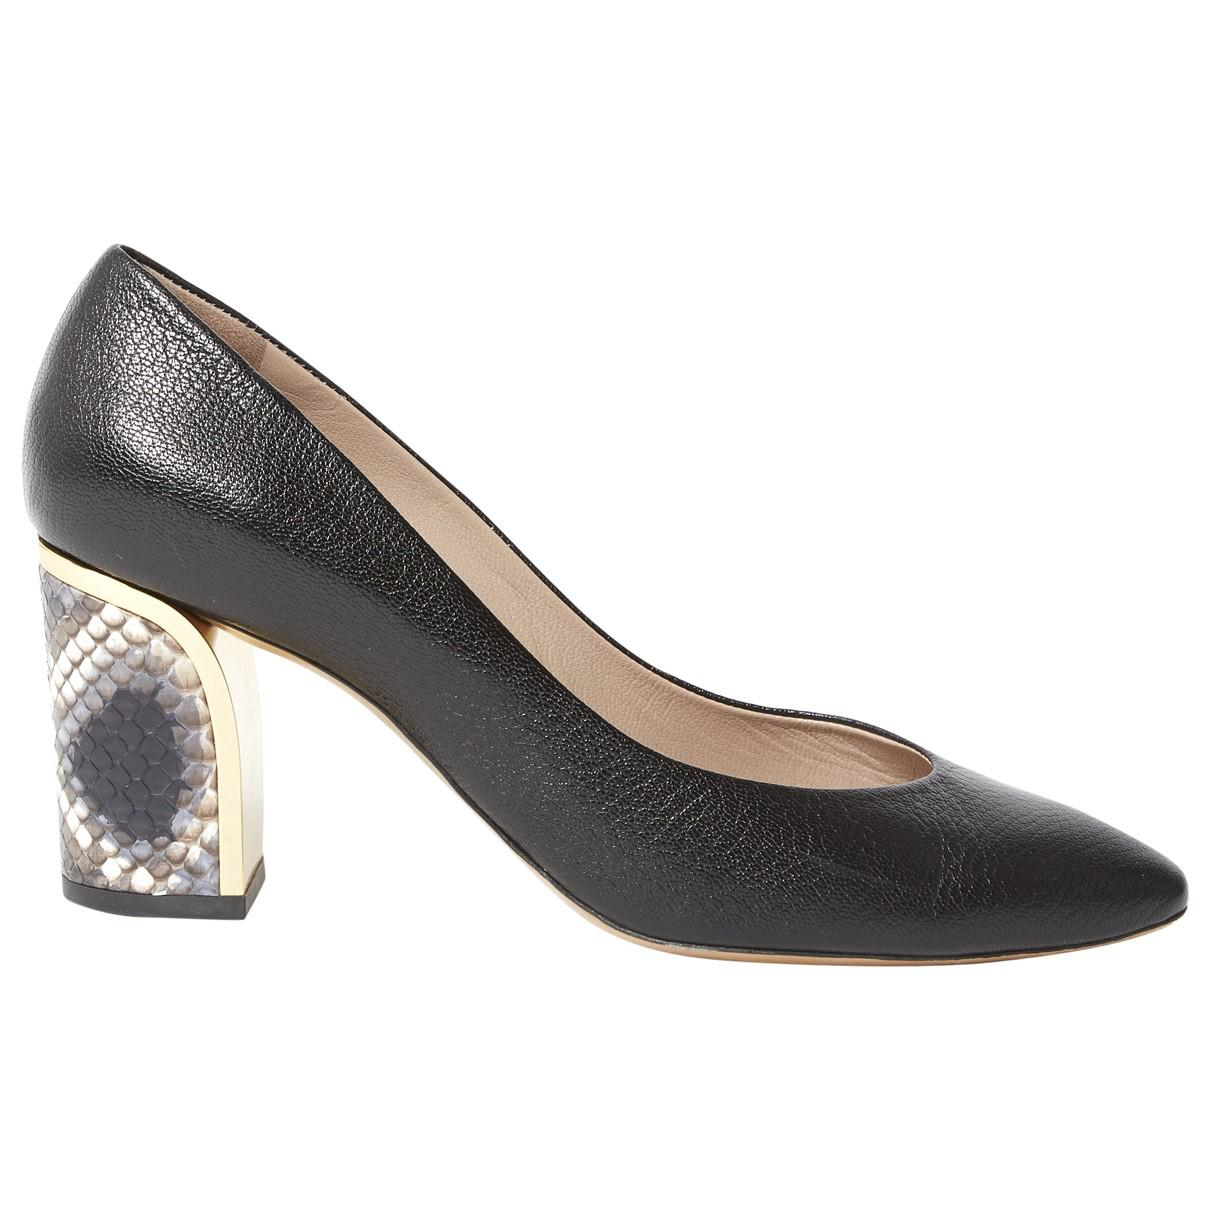 Pre-owned - LEATHER PUMPS Chlo aTpUG8w